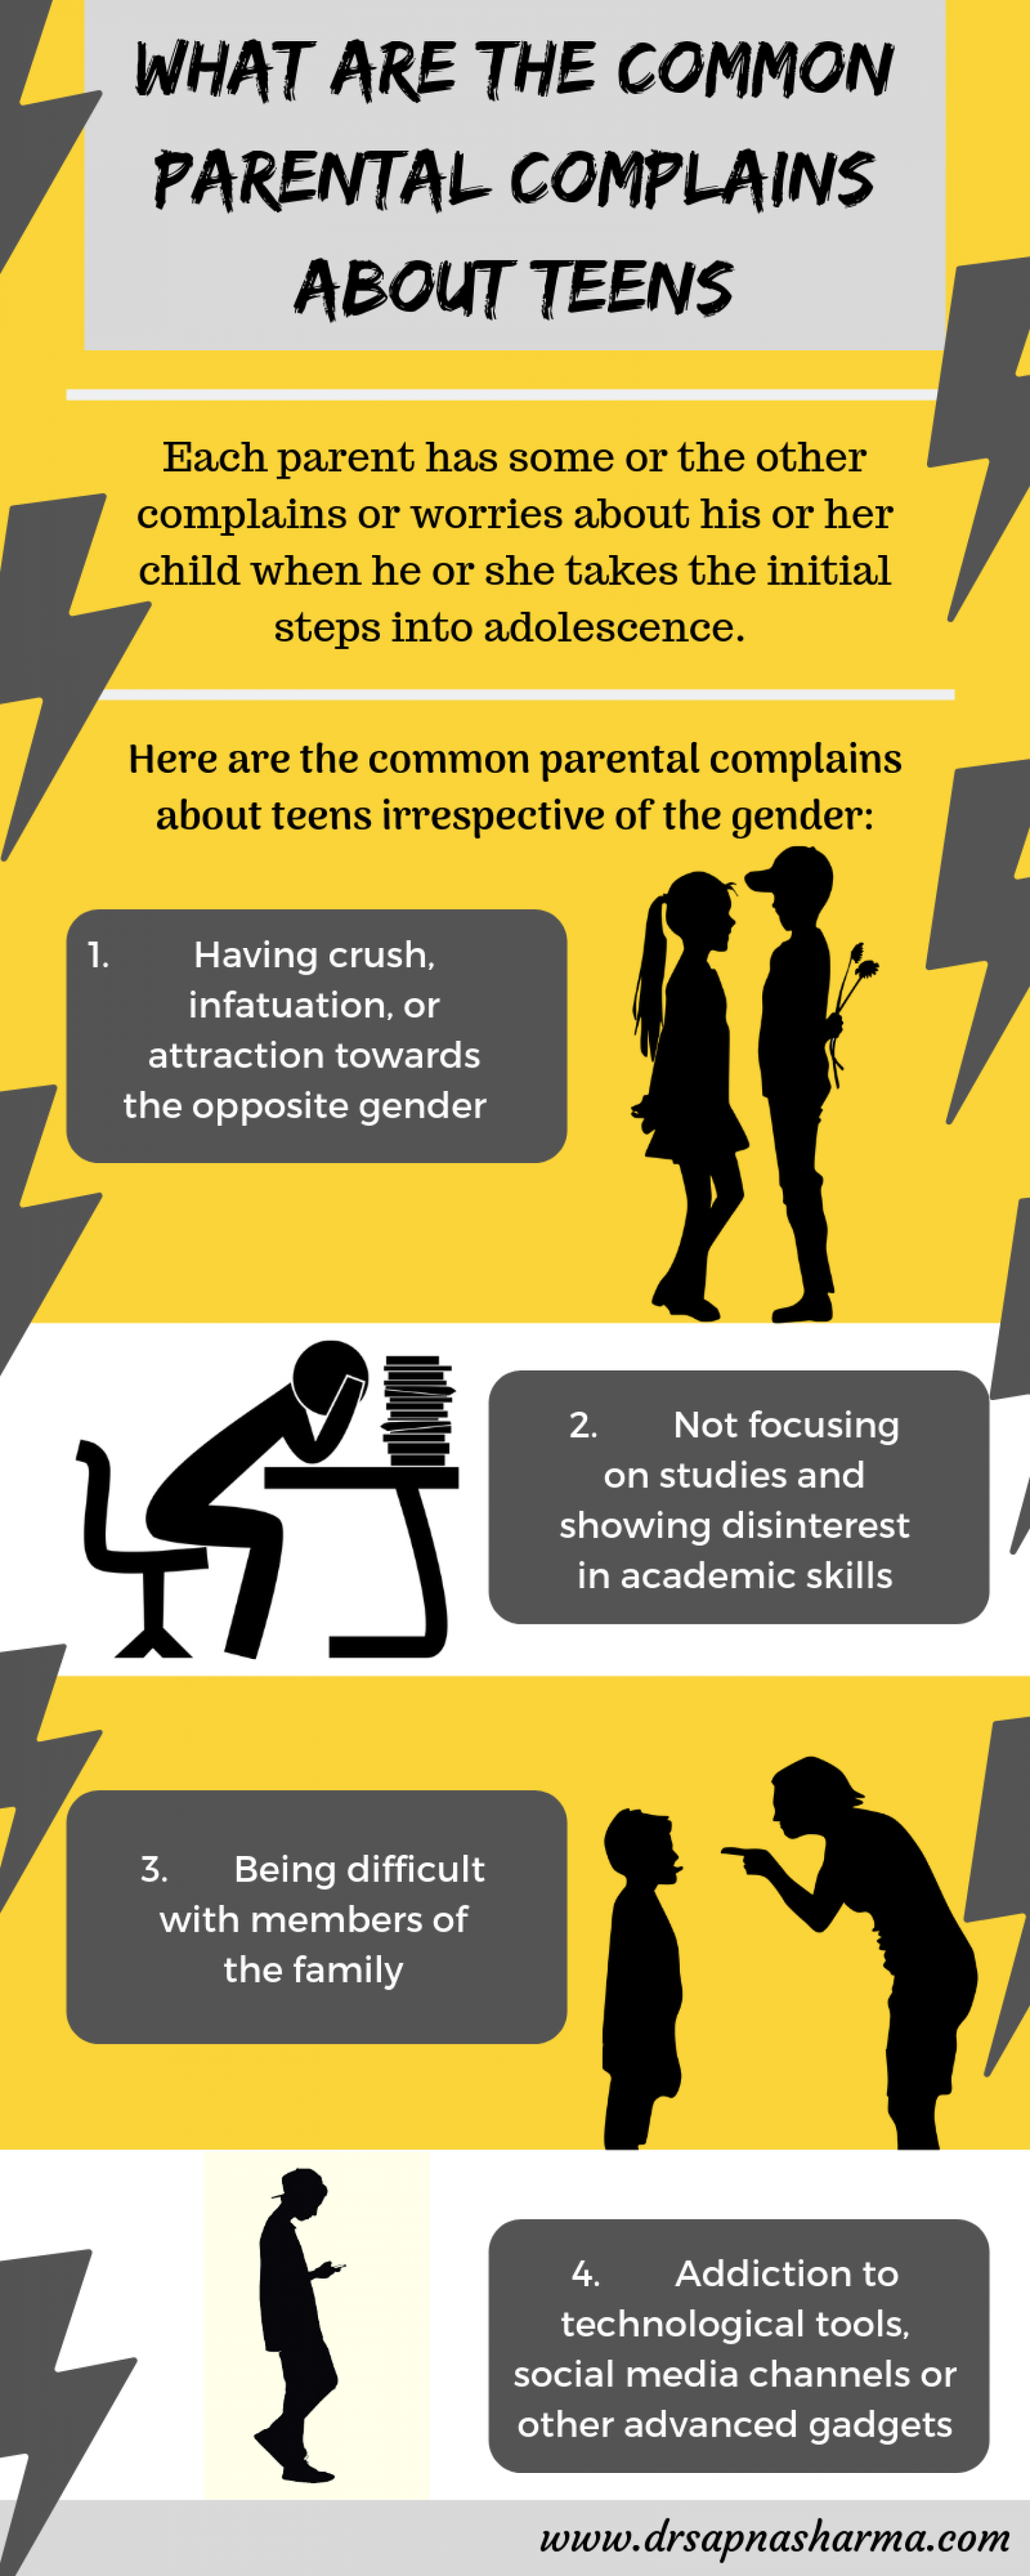 What are the Common Parental Complains about Teens Infographic